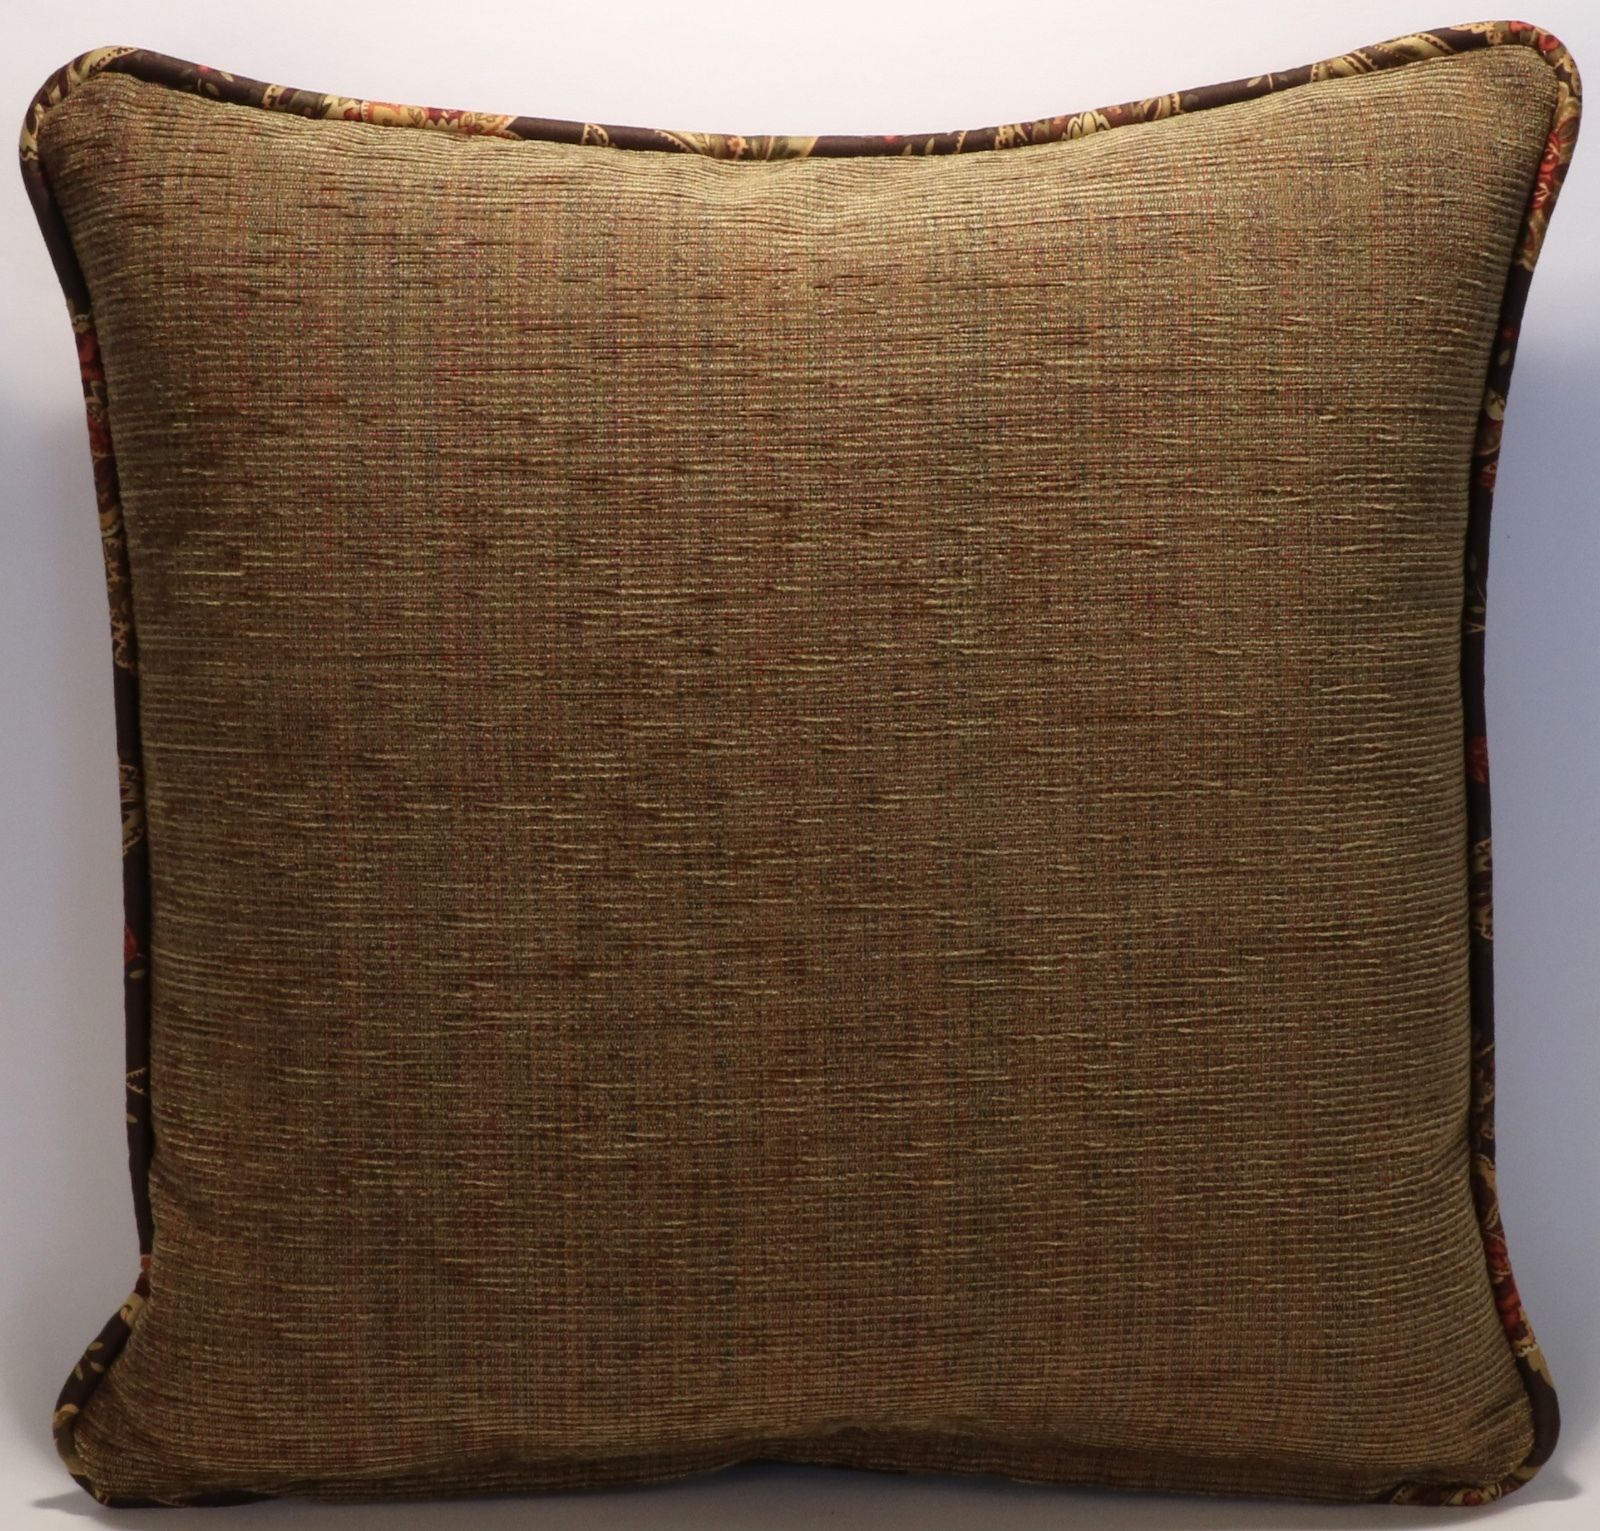 Decorative Pillows Target | Gold Throw Pillows | Decorative Pillows for Bed